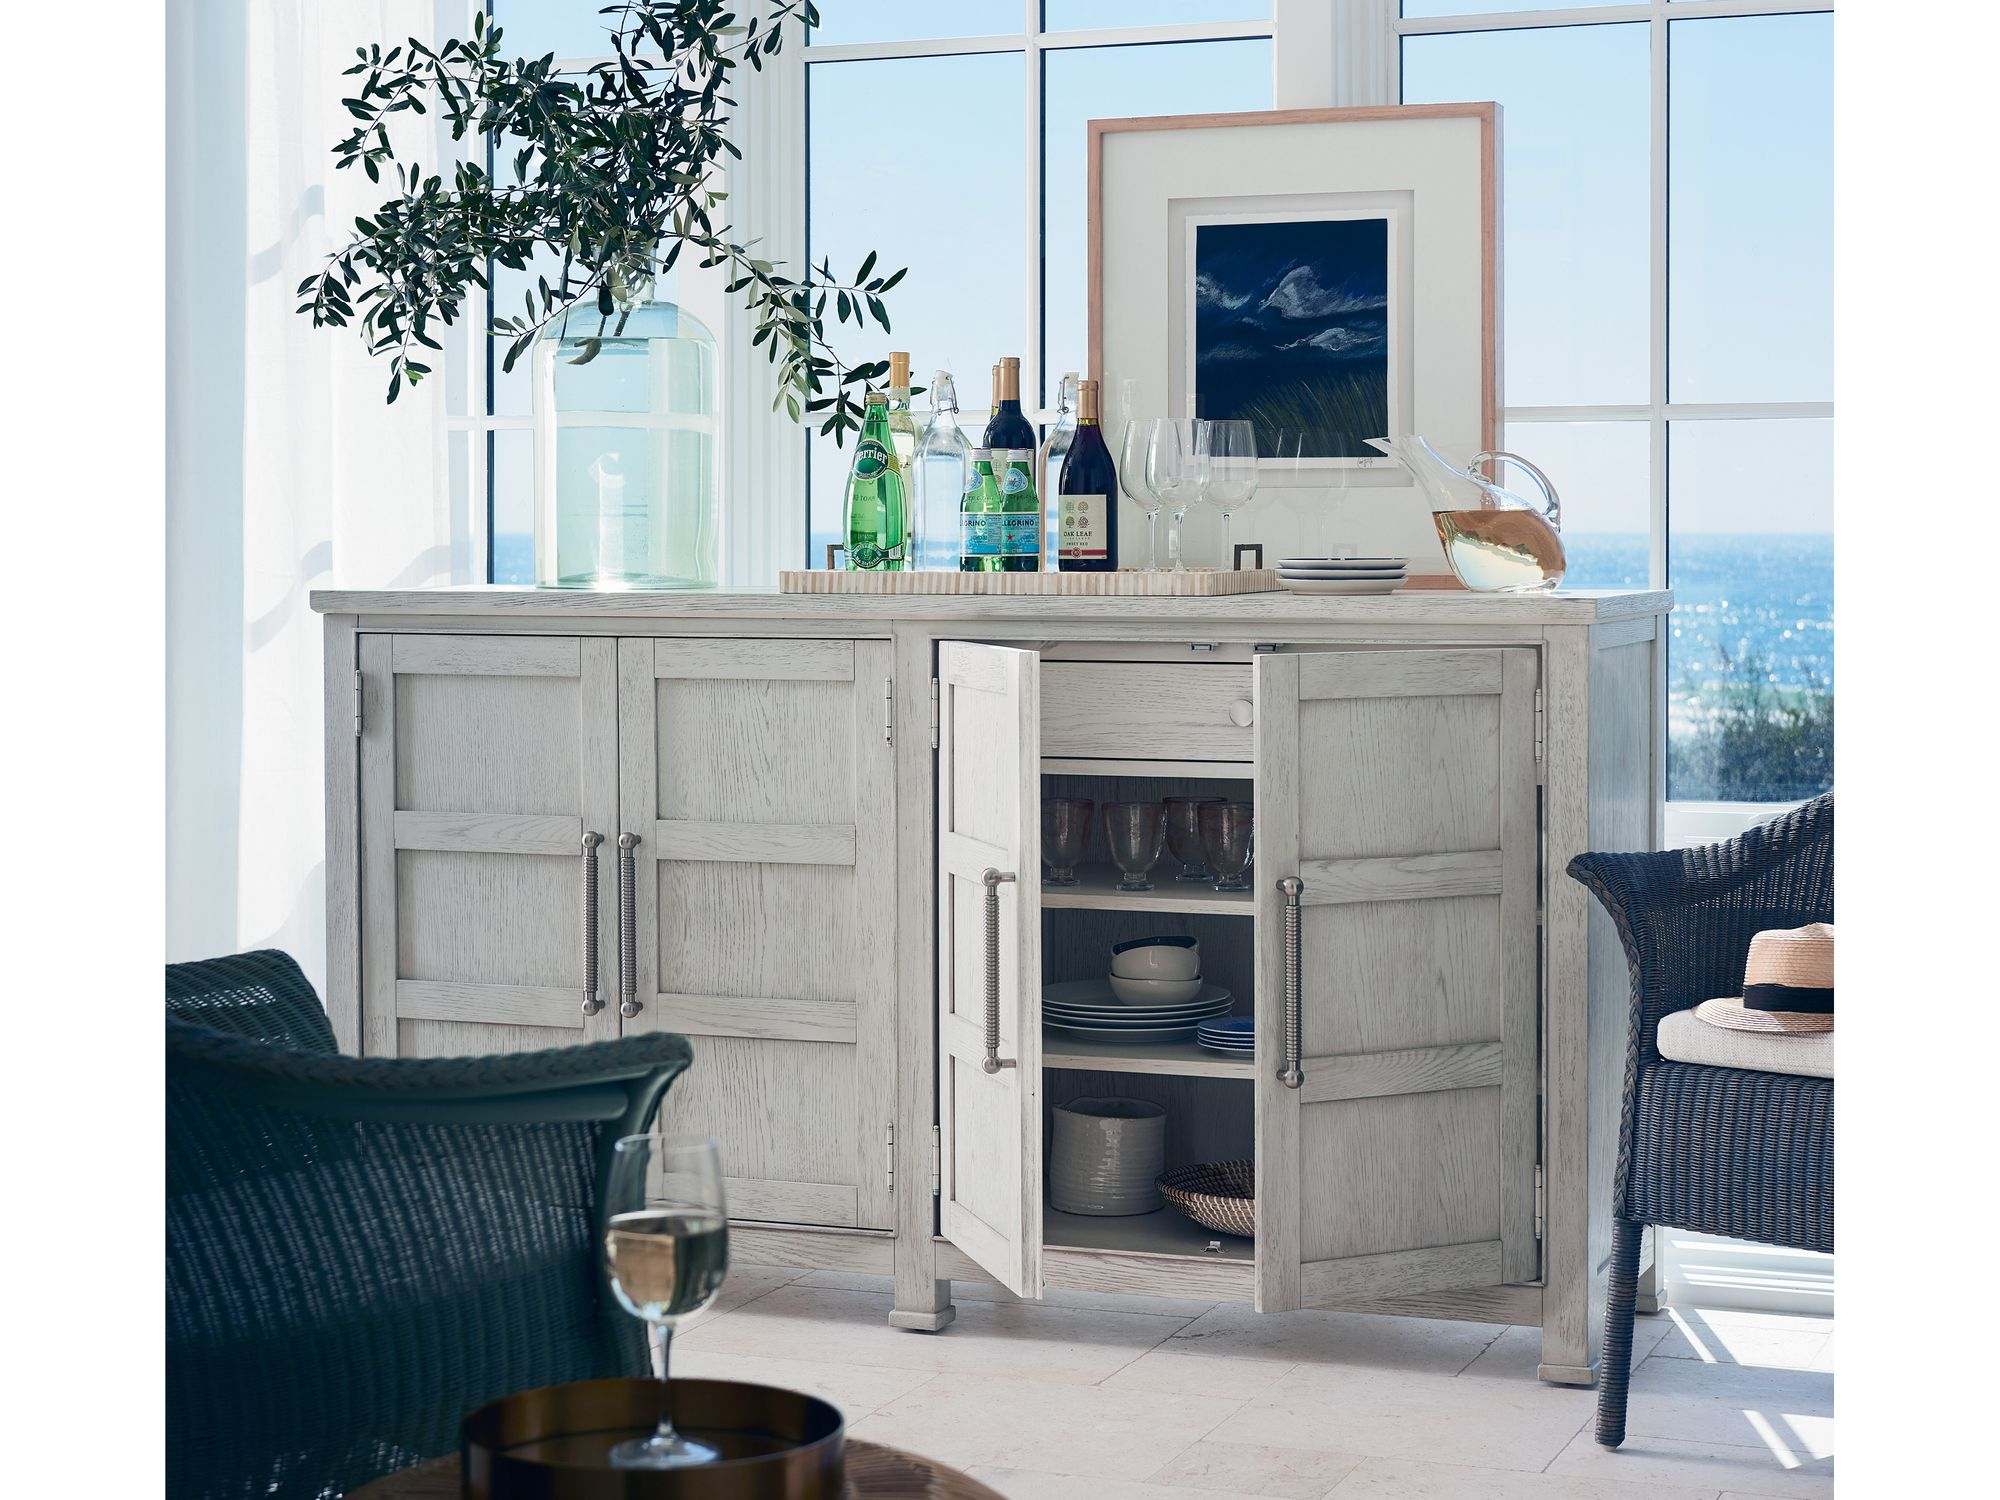 Shop The Universal Furniture X Coastal Living Collection At Furnitureland South Universal Furniture Low Country Homes Coastal Living